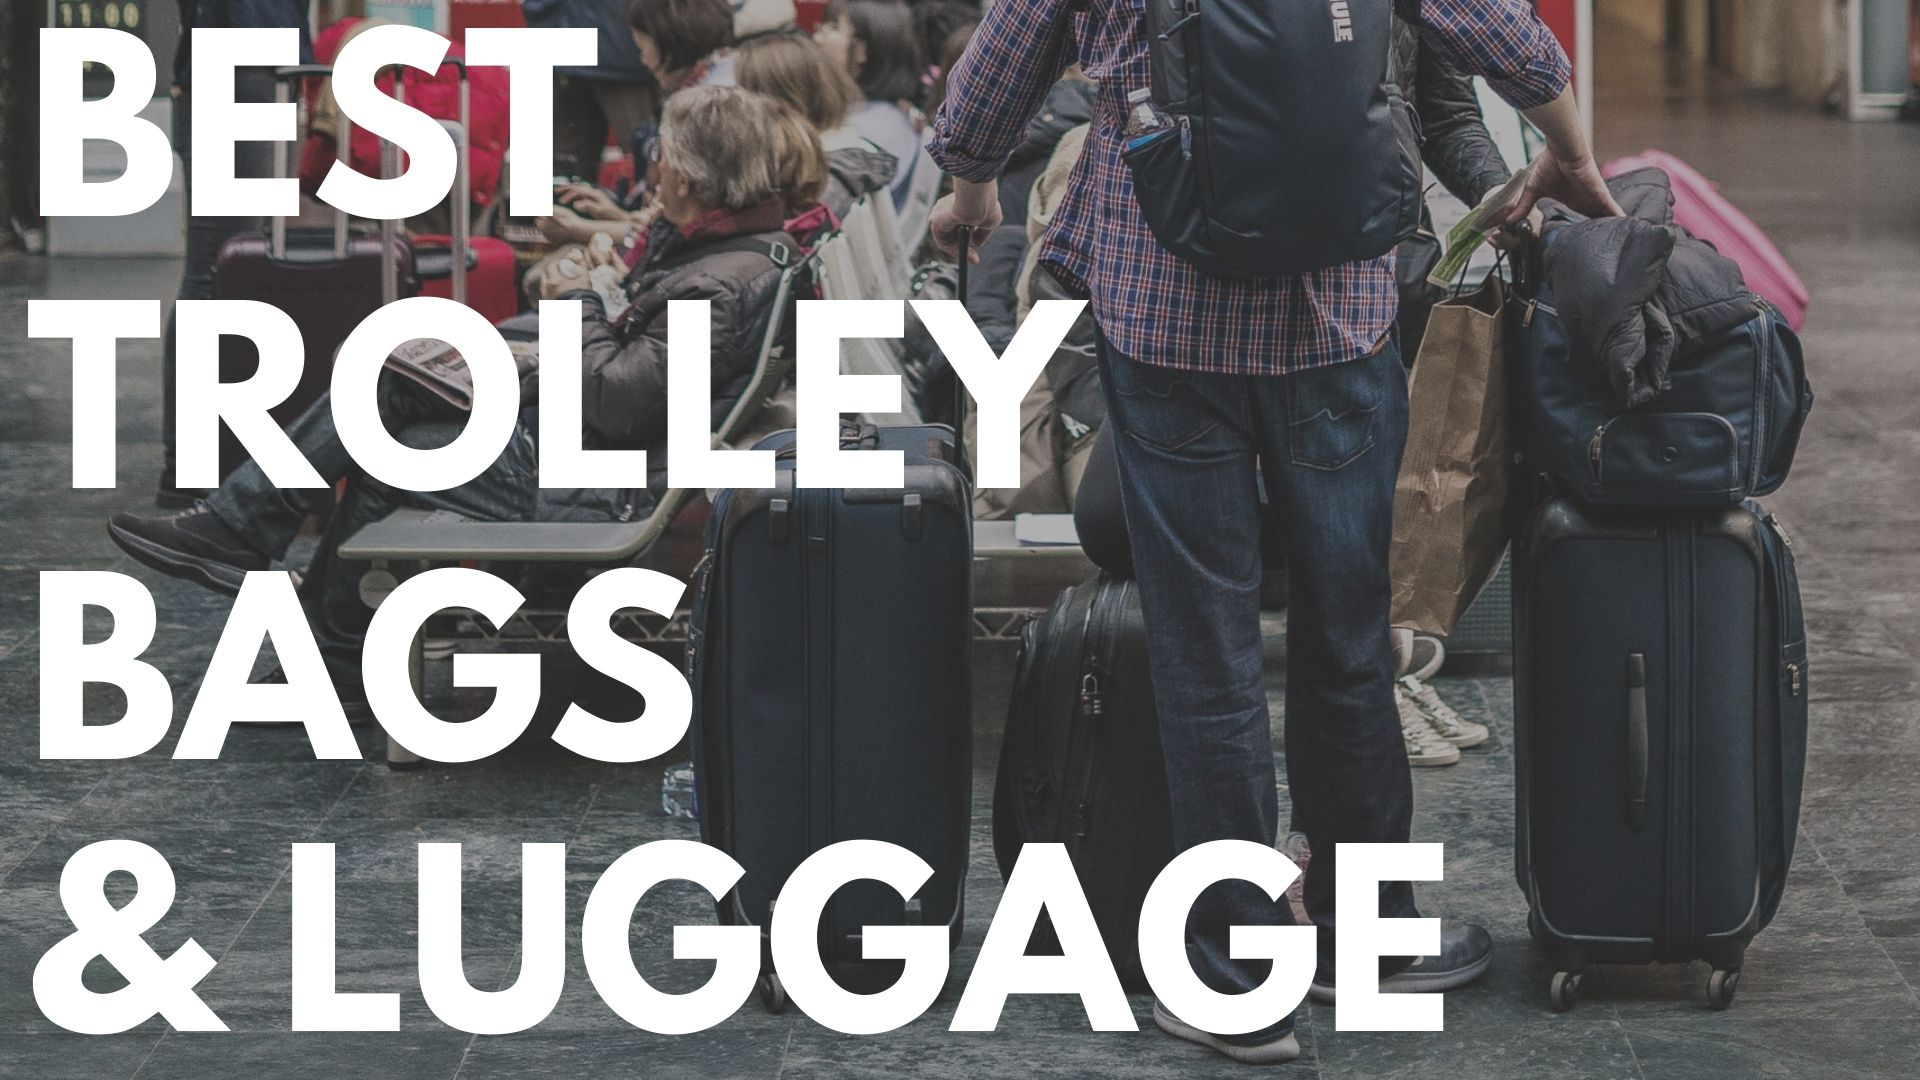 Best Suitcase, Trolley Bags & Luggage